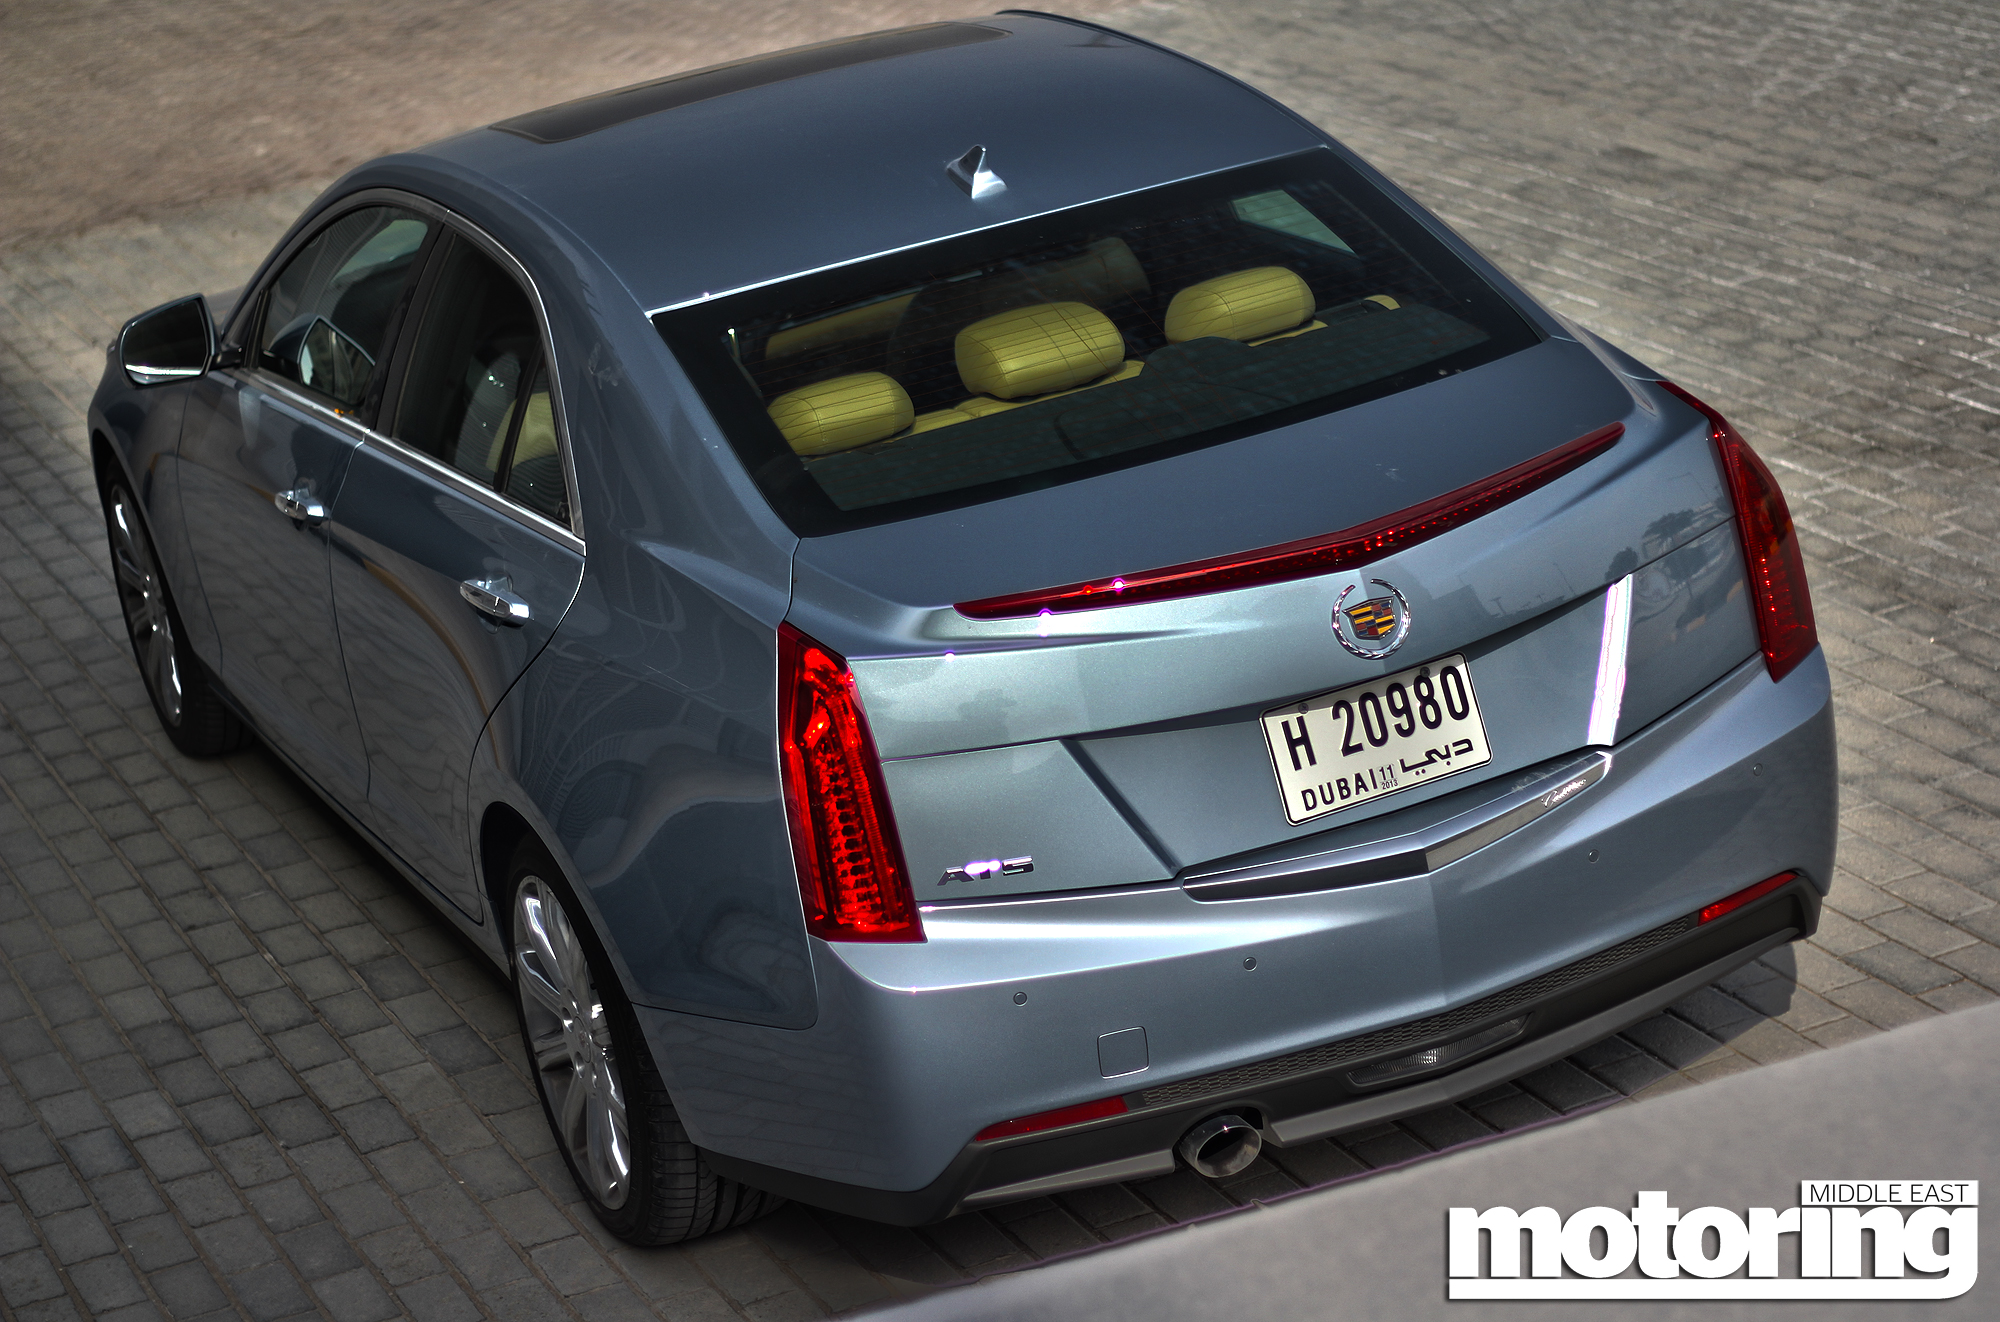 Cadillac ATS 2.5 Auto Review - Motoring Middle East: Car news ...